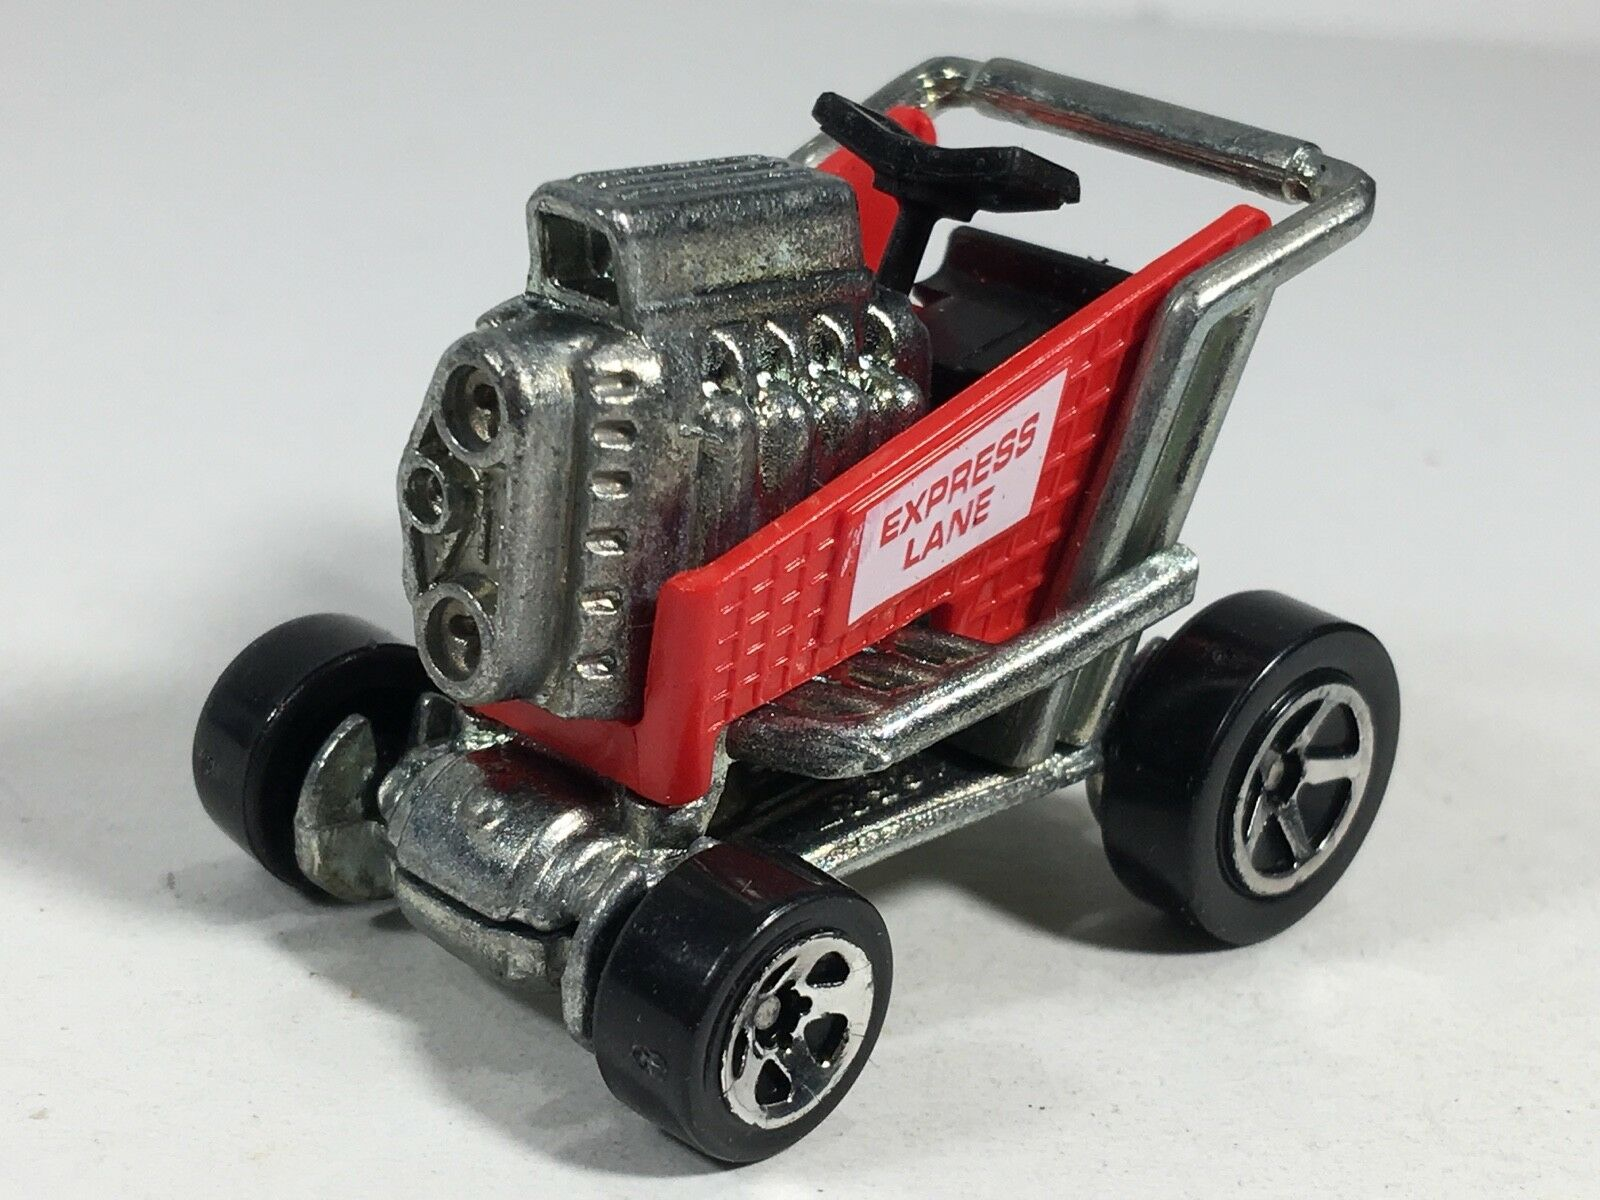 Hot Wheels 1998 1998 1998 Express Lane Shopping Cart rosso HW First Editions Series Malaysia b51e05